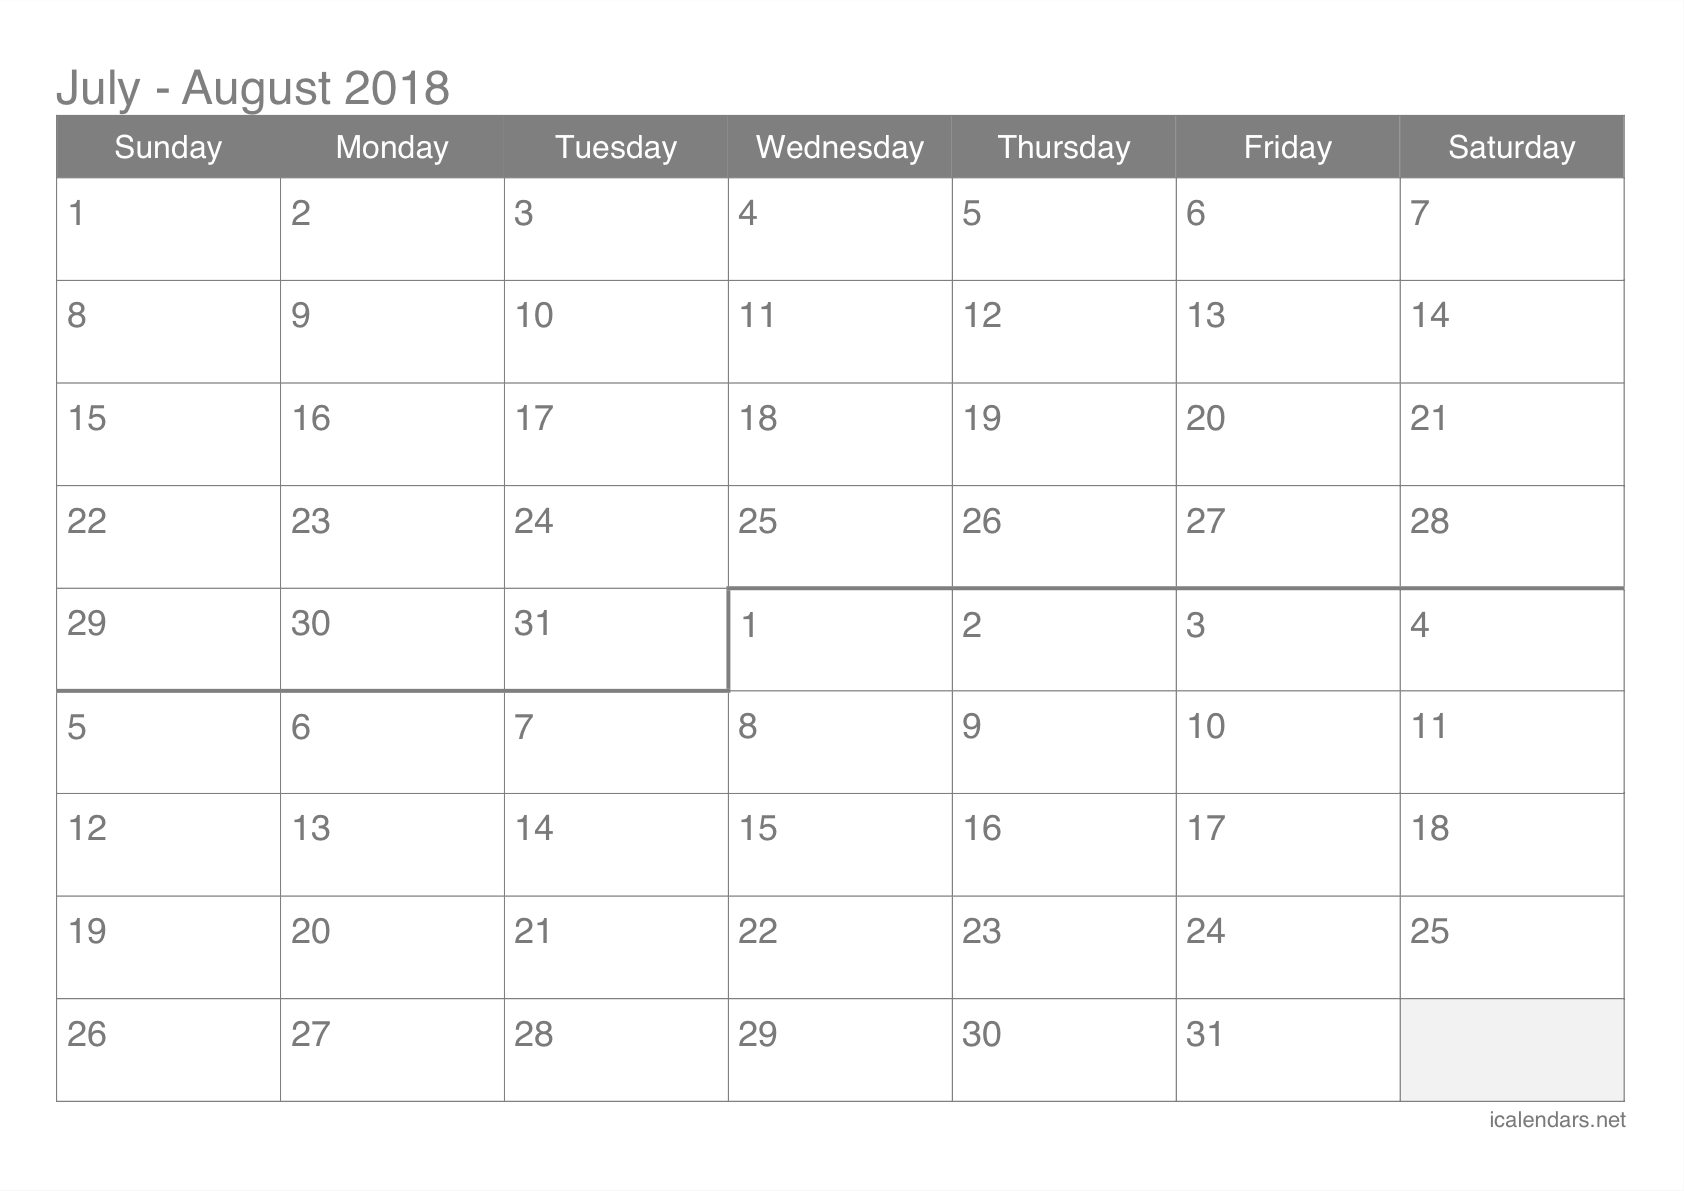 July And August 2018 Printable Calendar - Icalendars with regard to August Calendar Printable 2 Month On One Page